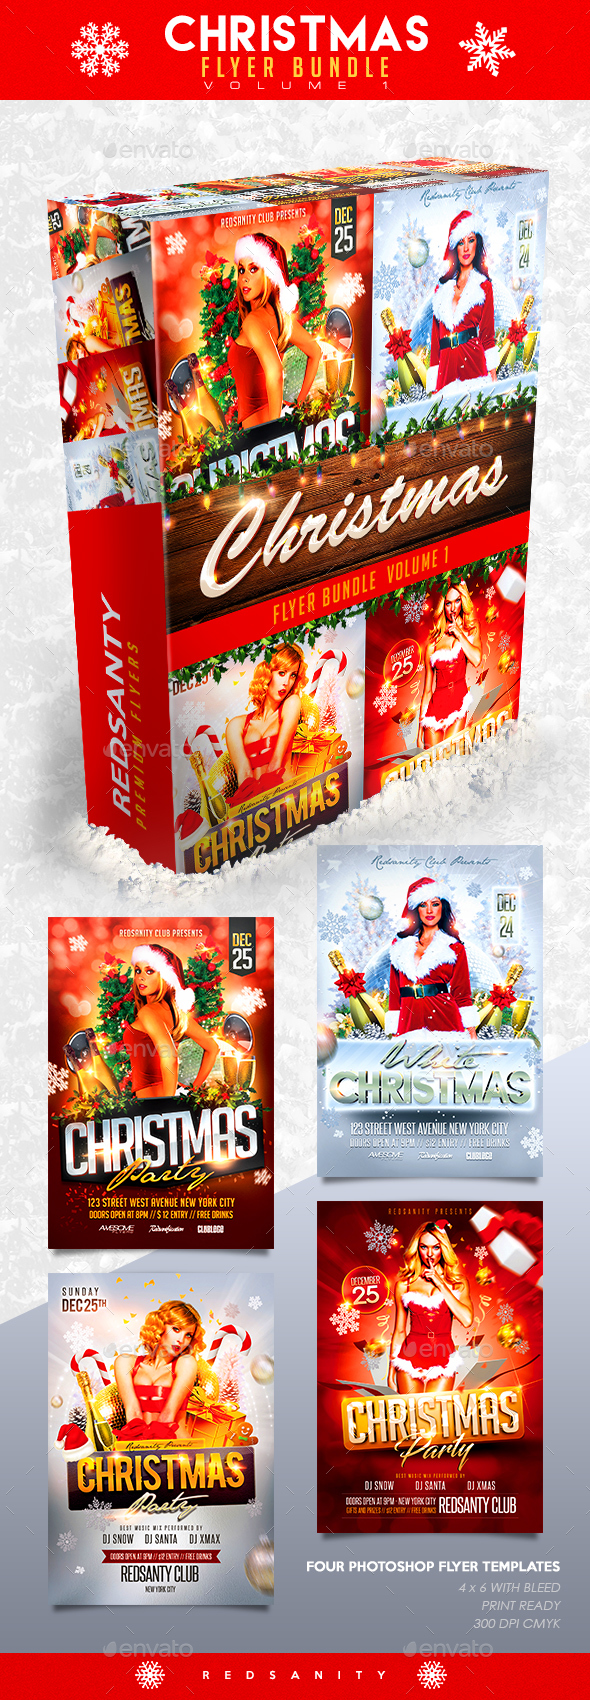 Christmas Flyer Bundle Vol.1 - Holidays Events